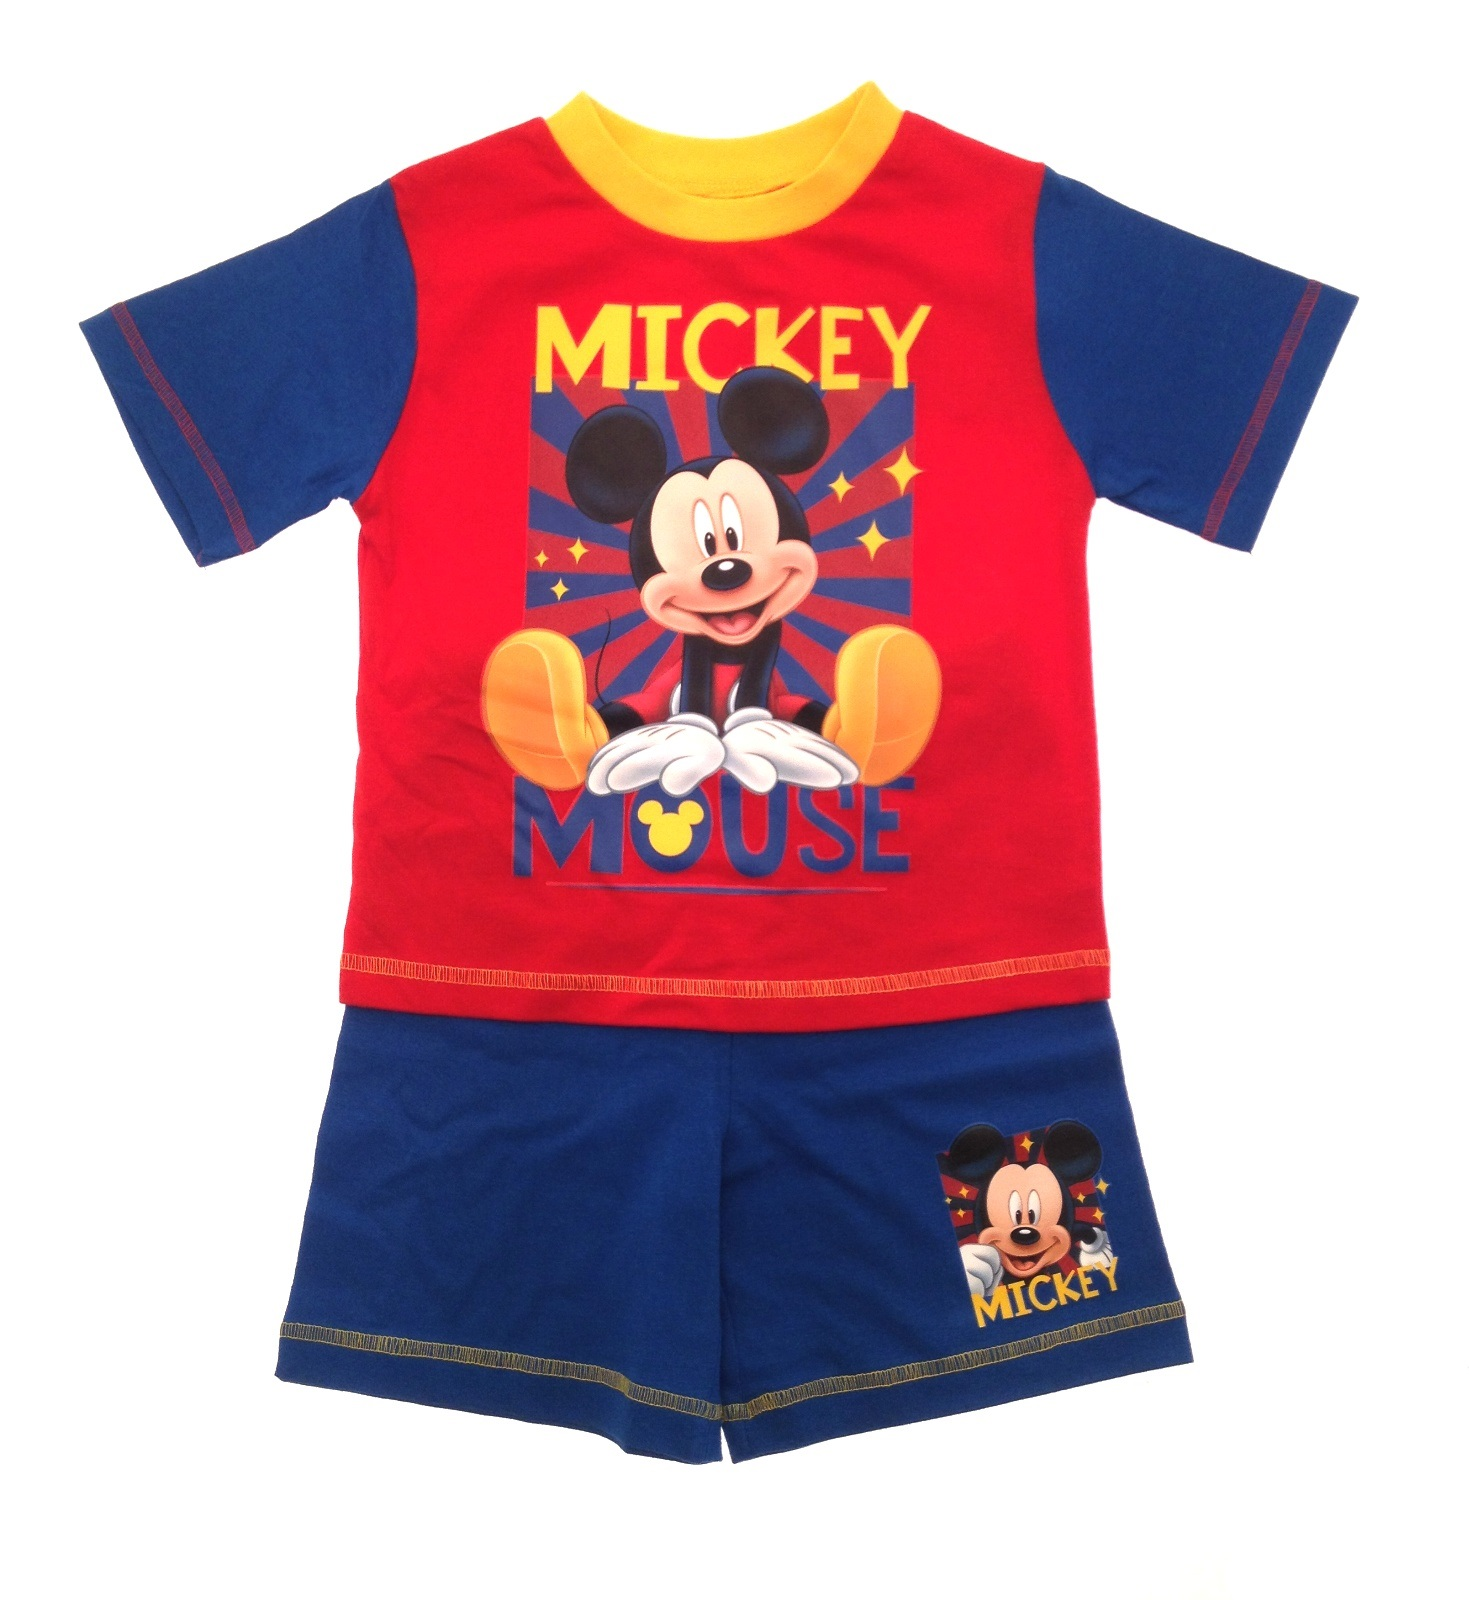 Find great deals on Boys Kids Toddlers Sleepwear at Kohl's today! Sponsored Links Disney's Mickey Mouse Toddler Boy Top & Bottoms Pajama Set. sale. $ Regular $ Toddler Boy Blaze & The Monster Machines Tops & Bottoms Pajama Set. sale. $